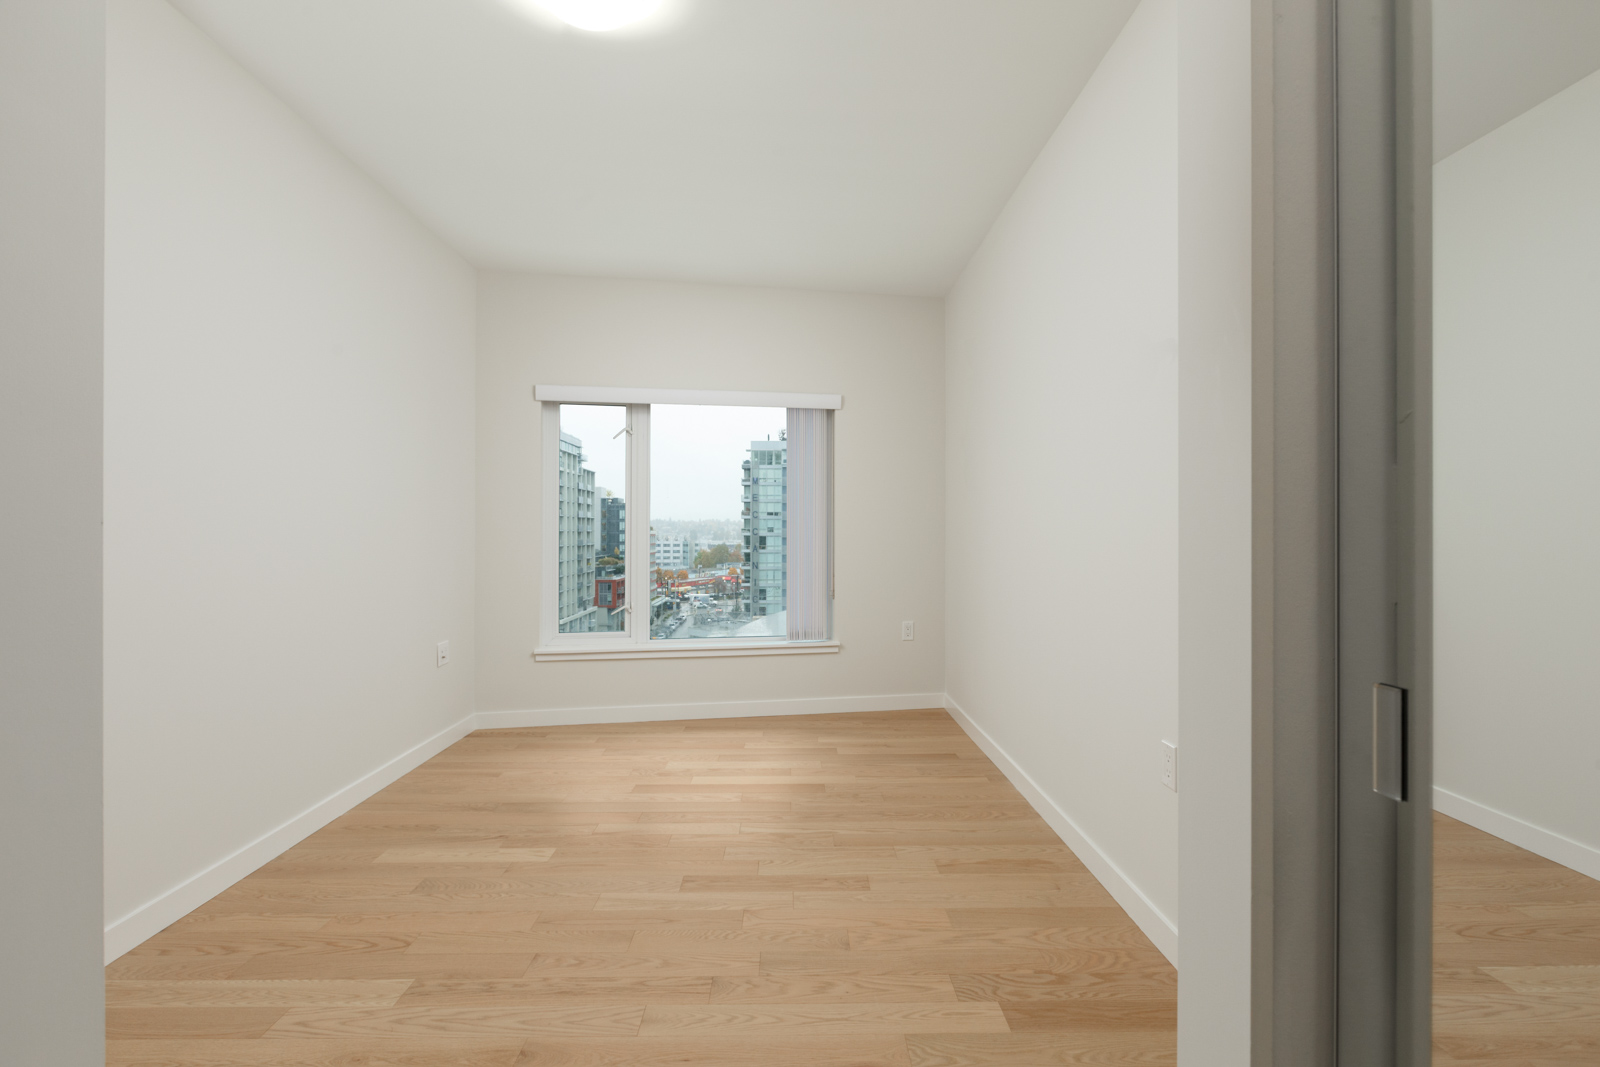 empty room in vancouver rental condo with white walls windows and hardwood floors